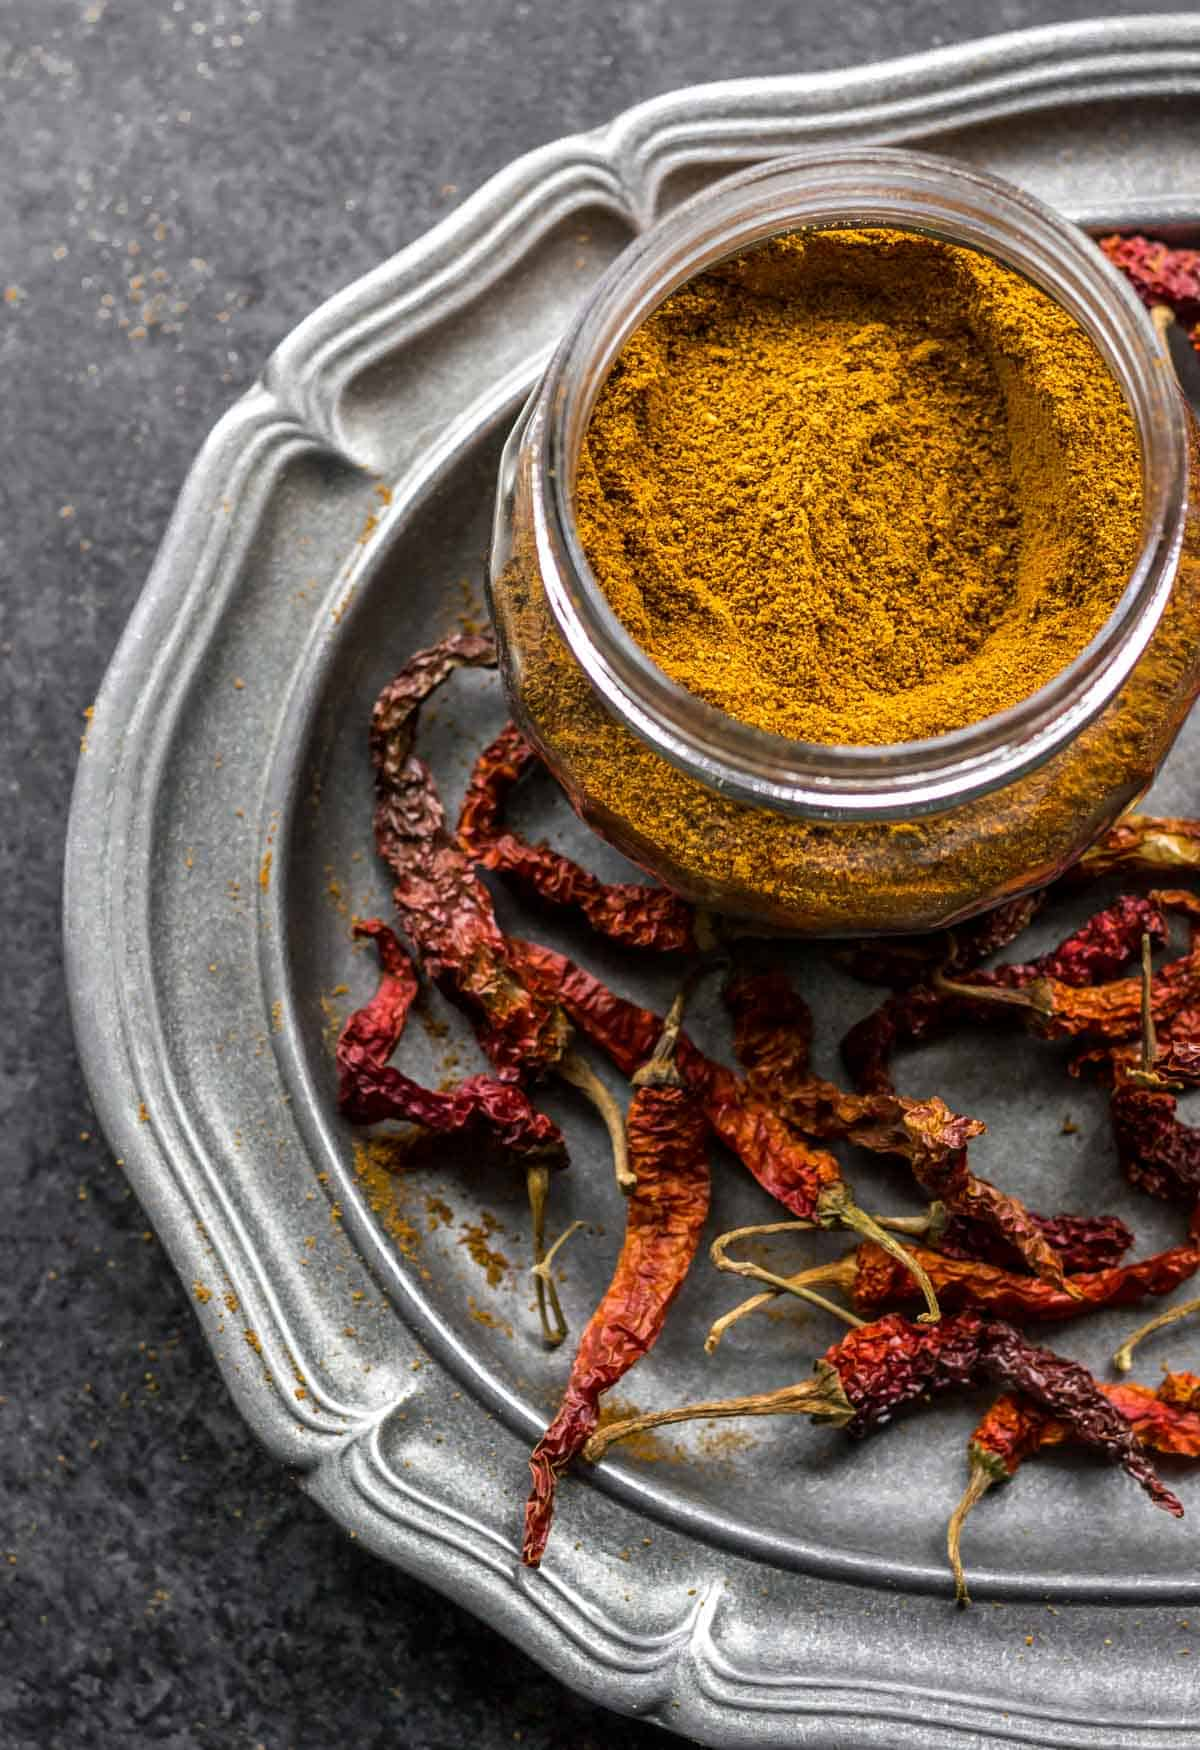 Sambar powder is the quintessential spice mix you will find in most south Indian homes. This aromatic spice blend transforms ordinary lentil-vegetable curries into delicious, wholesome stews. Make this spice blend at home today.